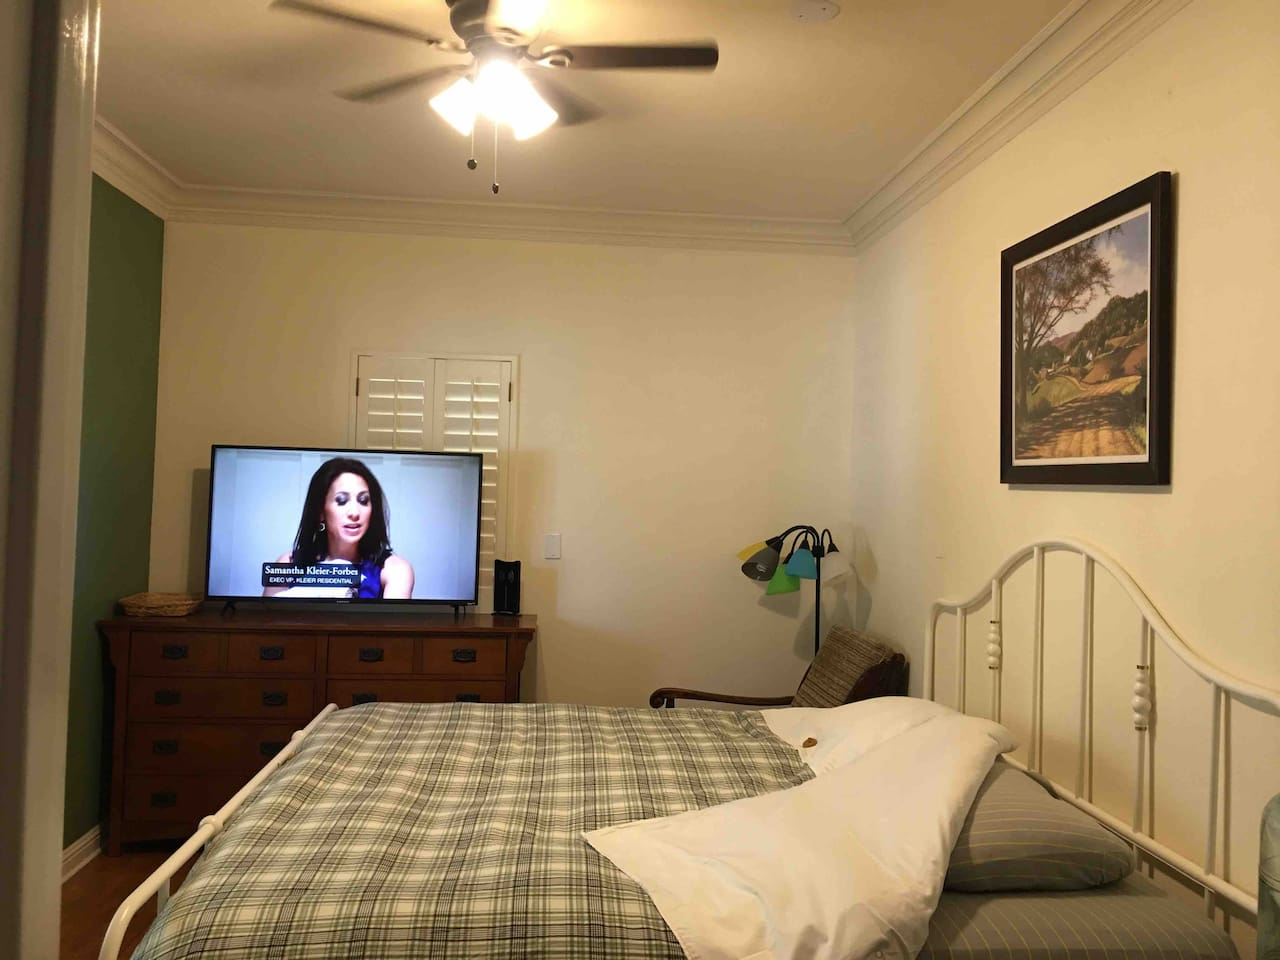 There are very comfortable King's bed, TV, small refrigerator, microwave , coffee machine, water filter, water heater.